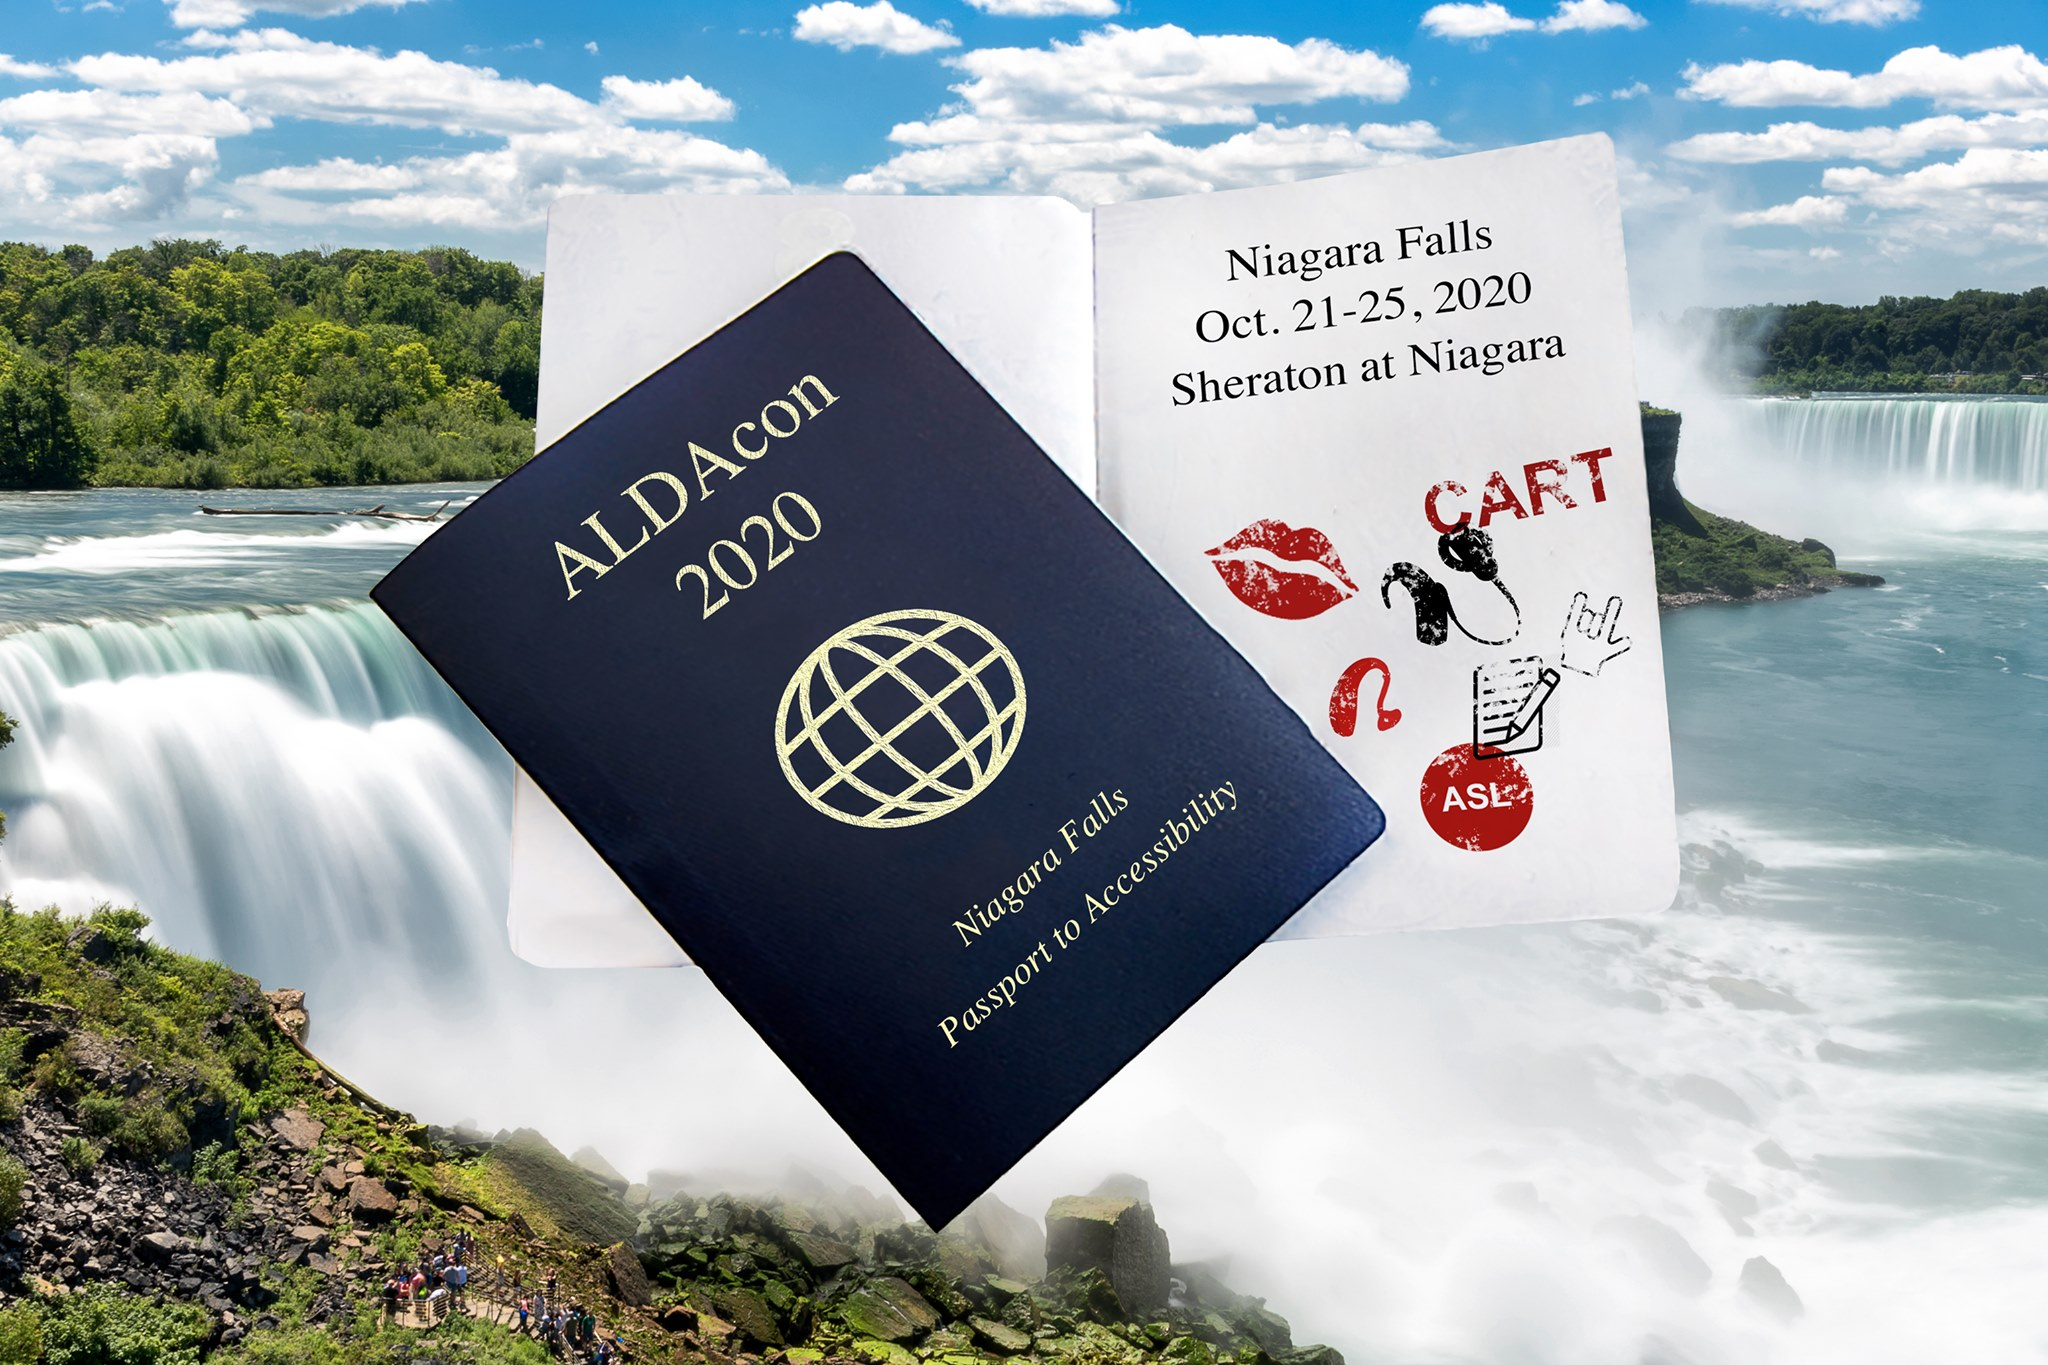 ALDAcon 2020 Oct. 21st - 25th Niagara Falls NY